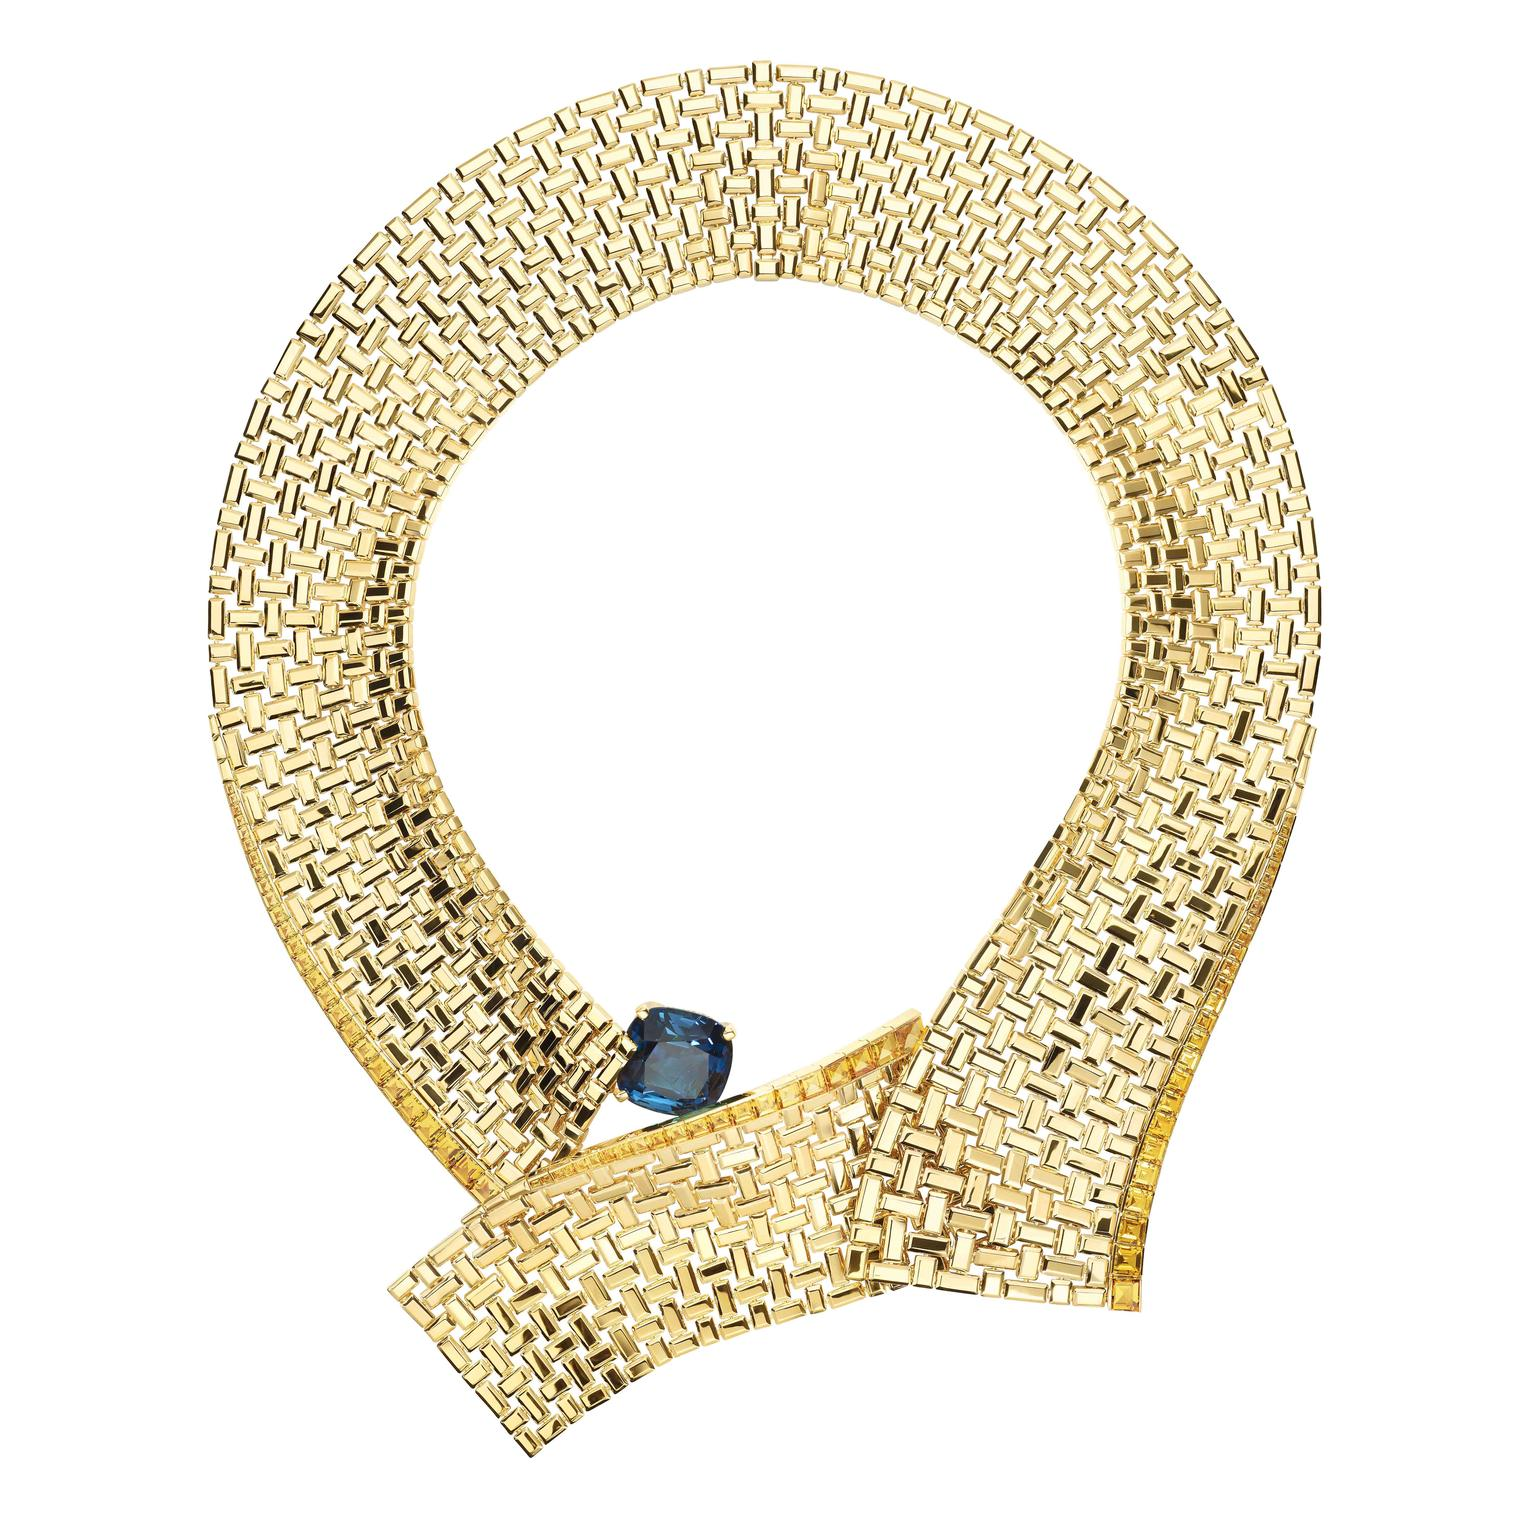 Chaumet Necklace on white